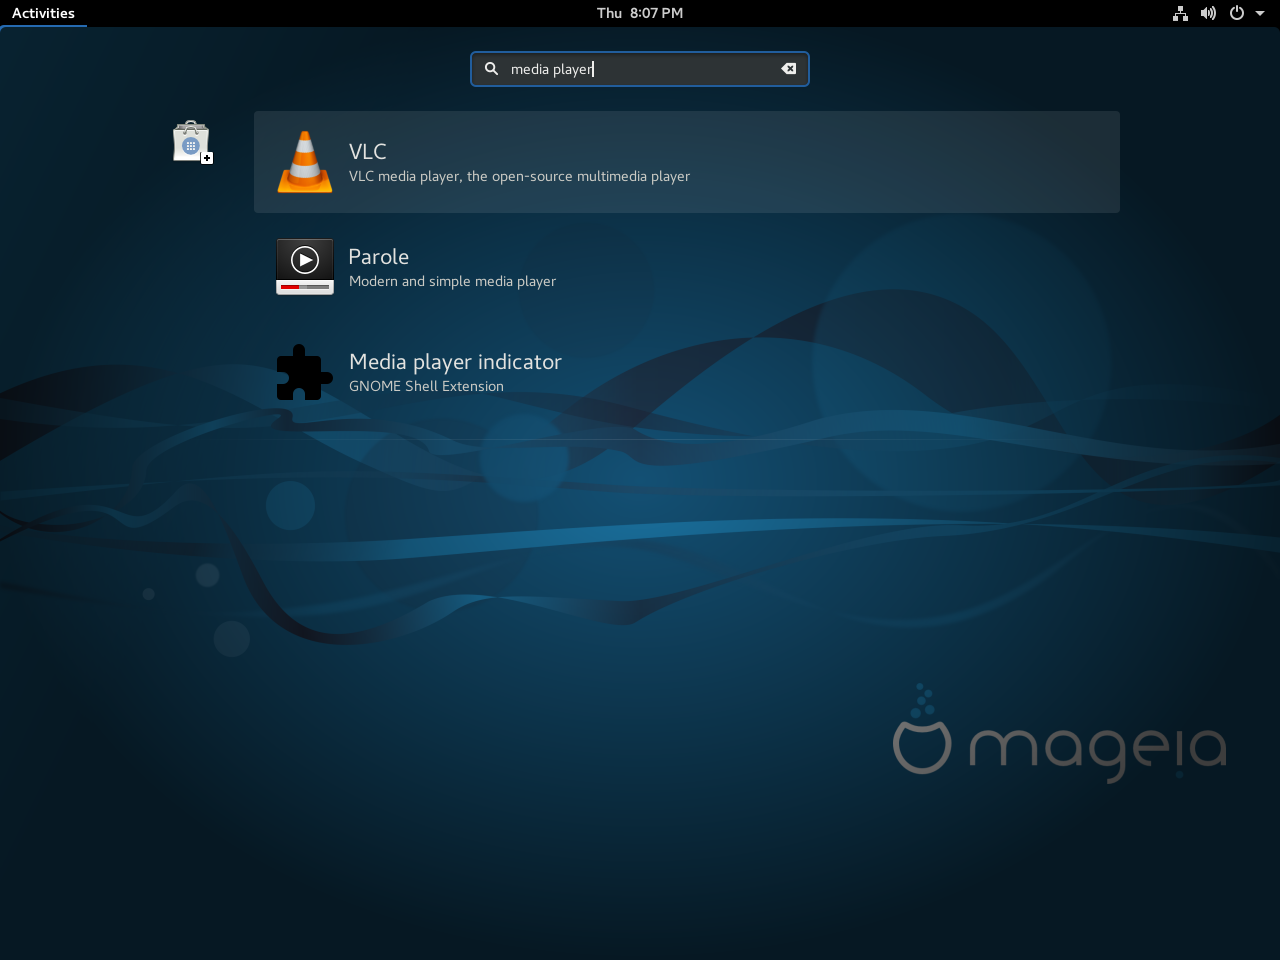 Searching for installable apps through GNOME Shell